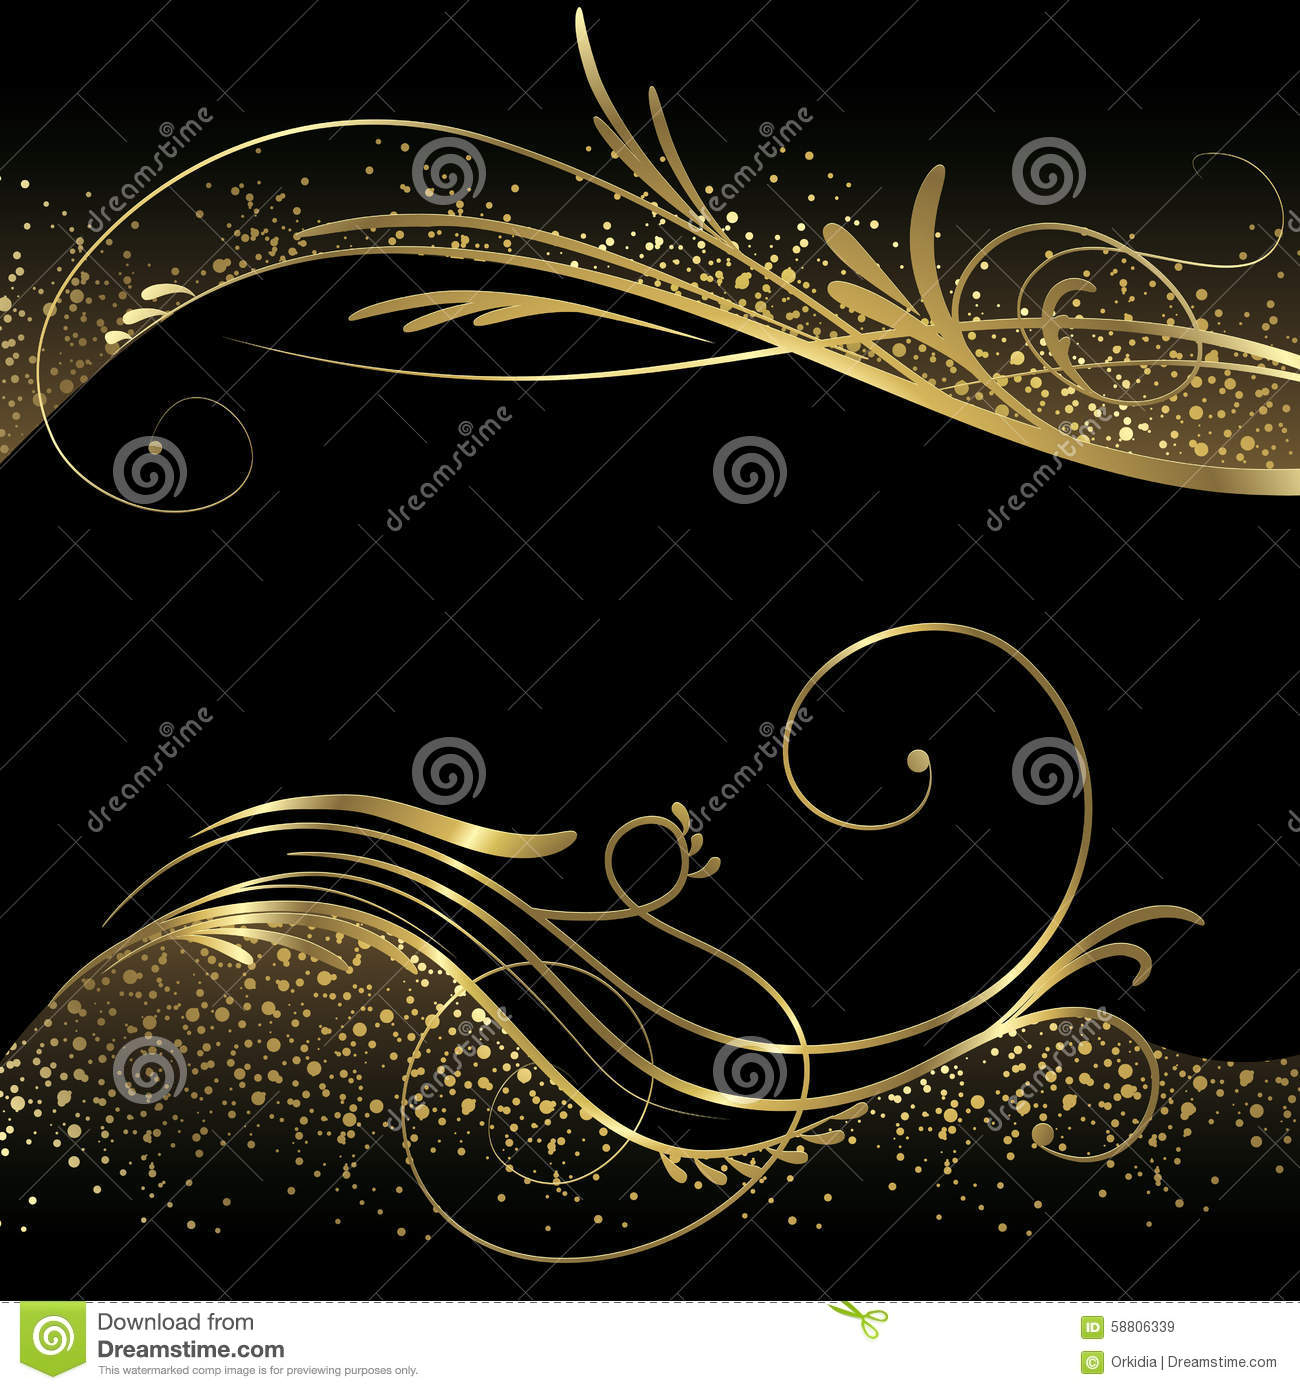 Abstract Black And Gold Background Stock Vector - Image ...